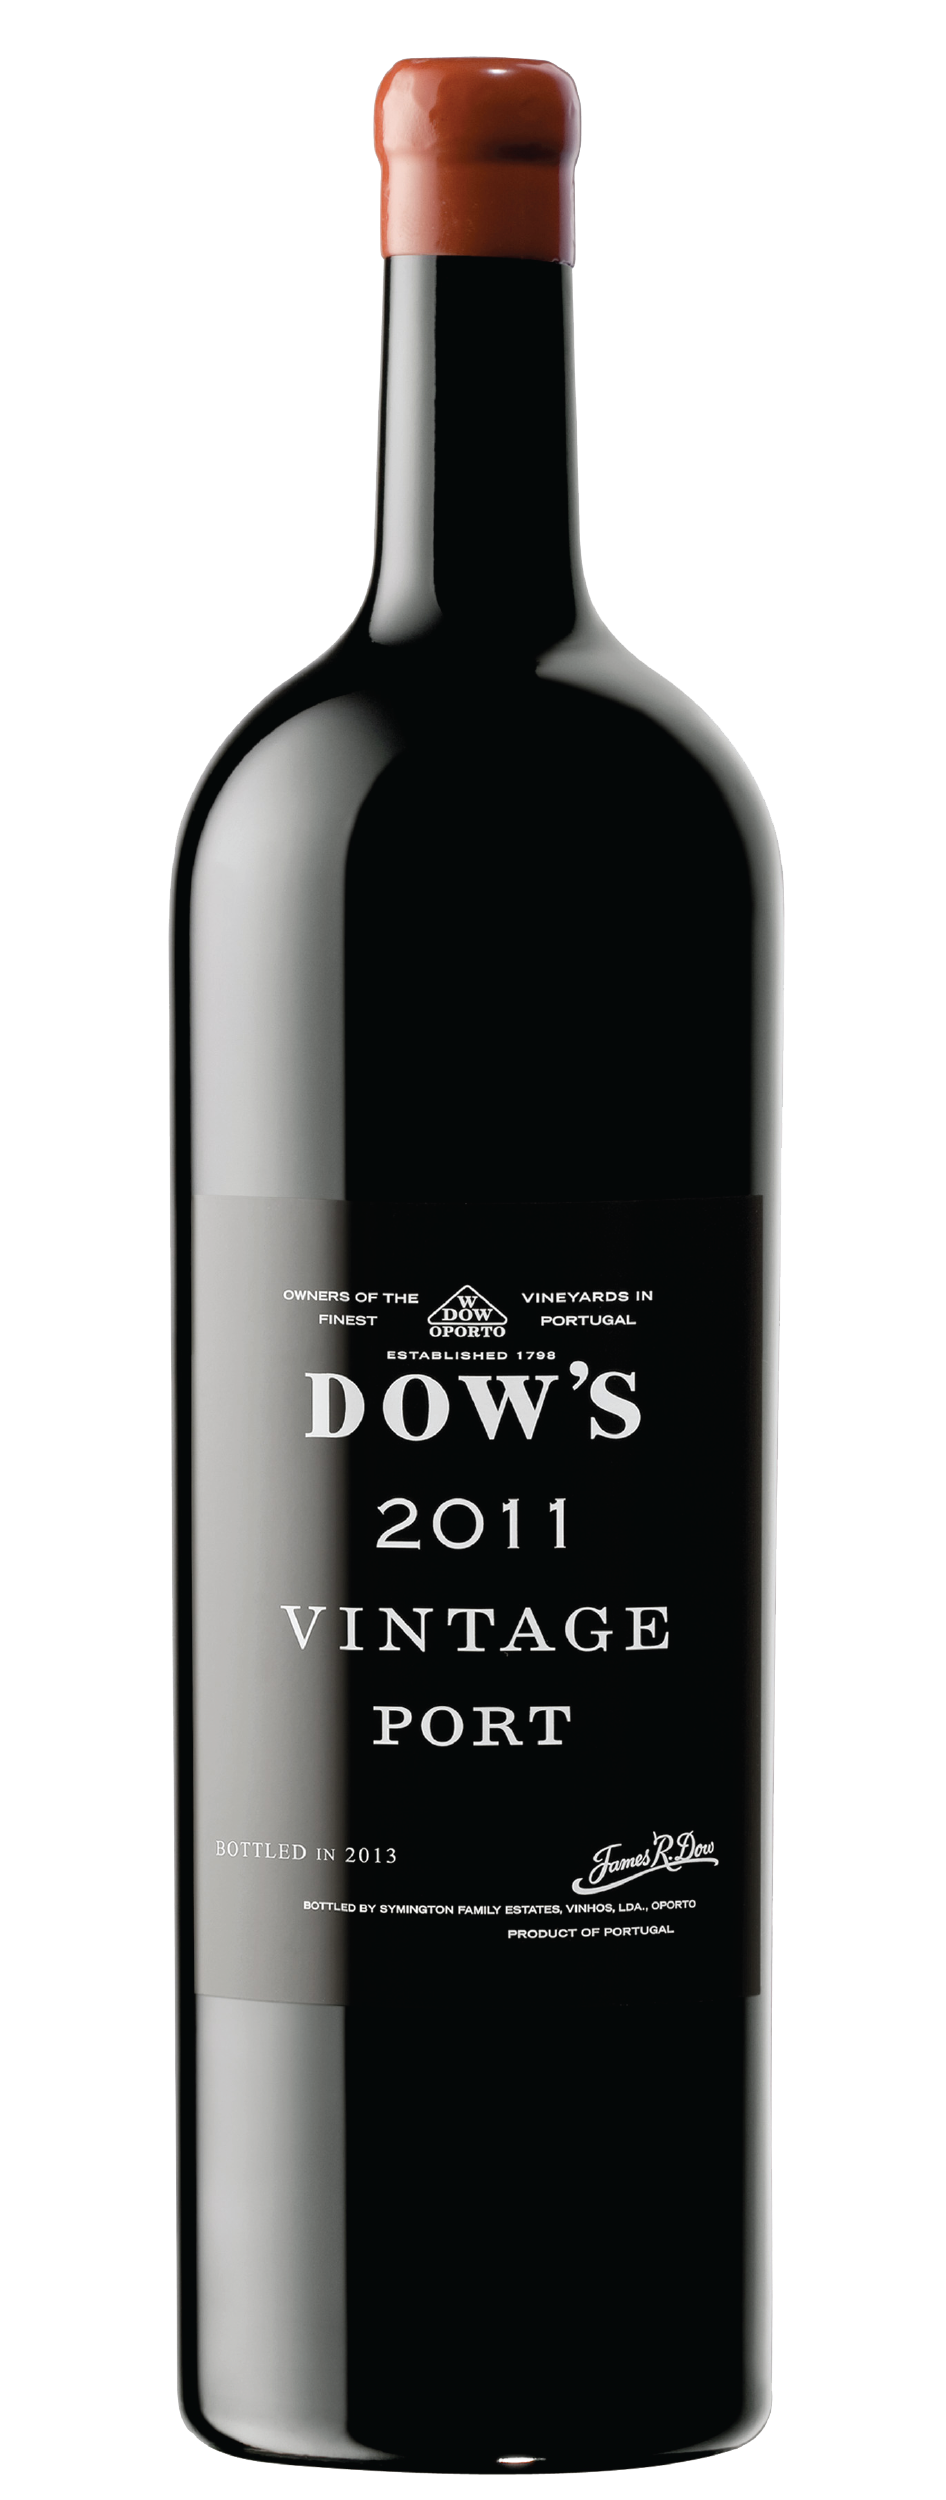 Product Image for DOW'S VINTAGE PORT 2011 - DOUBLE MAGNUM